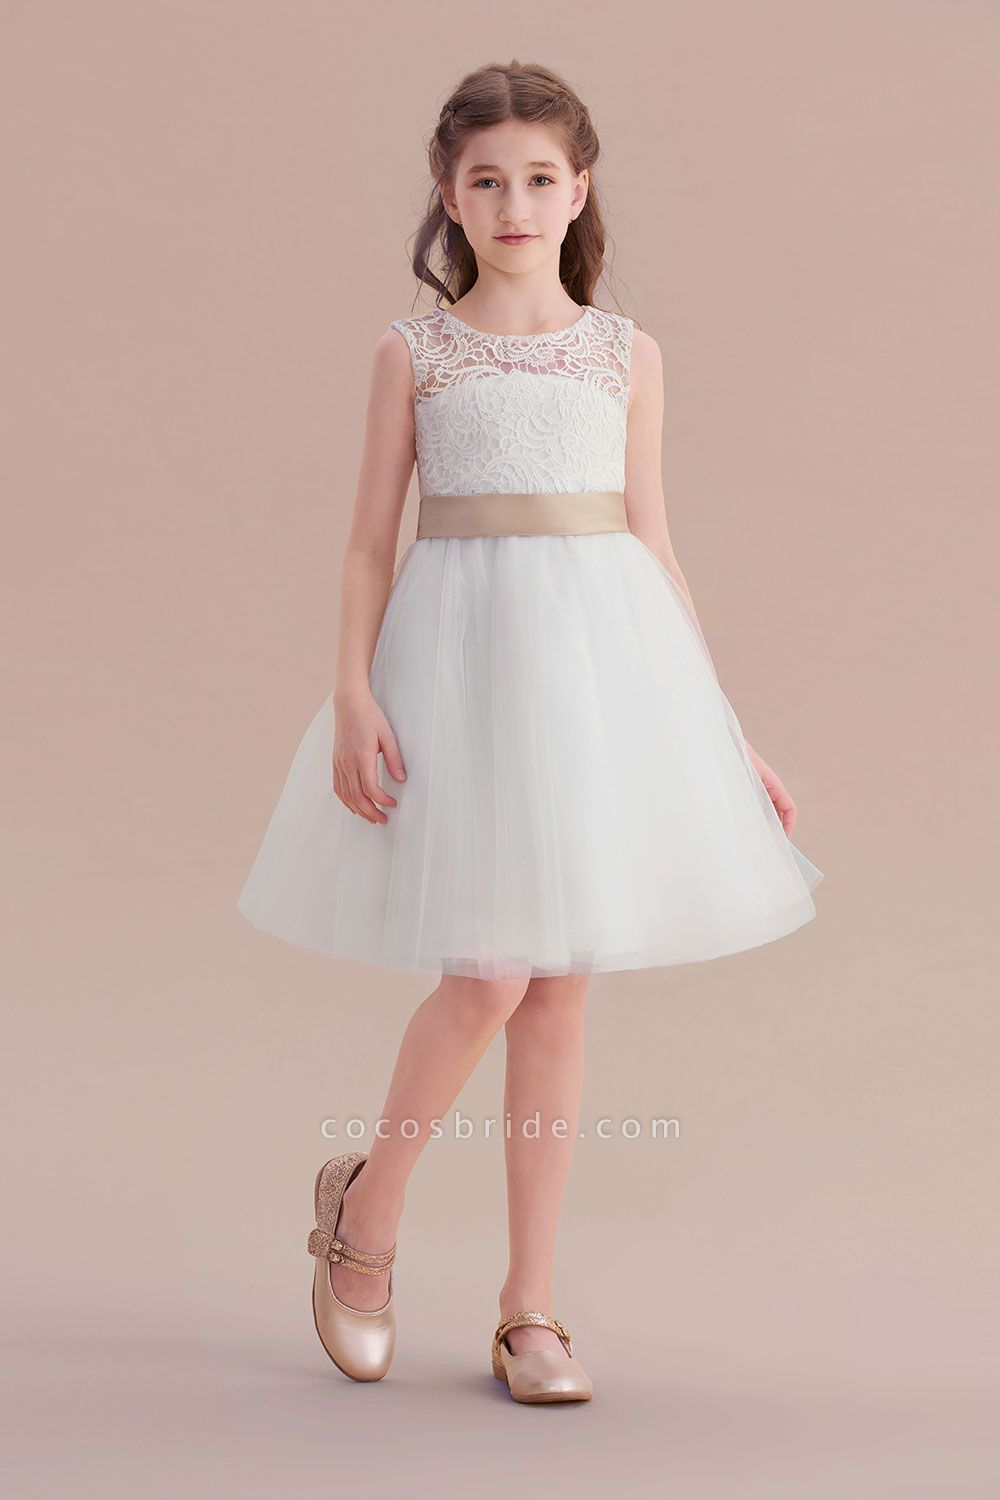 Bow Tulle Lace Knee Length A-line Flower Girl Dress